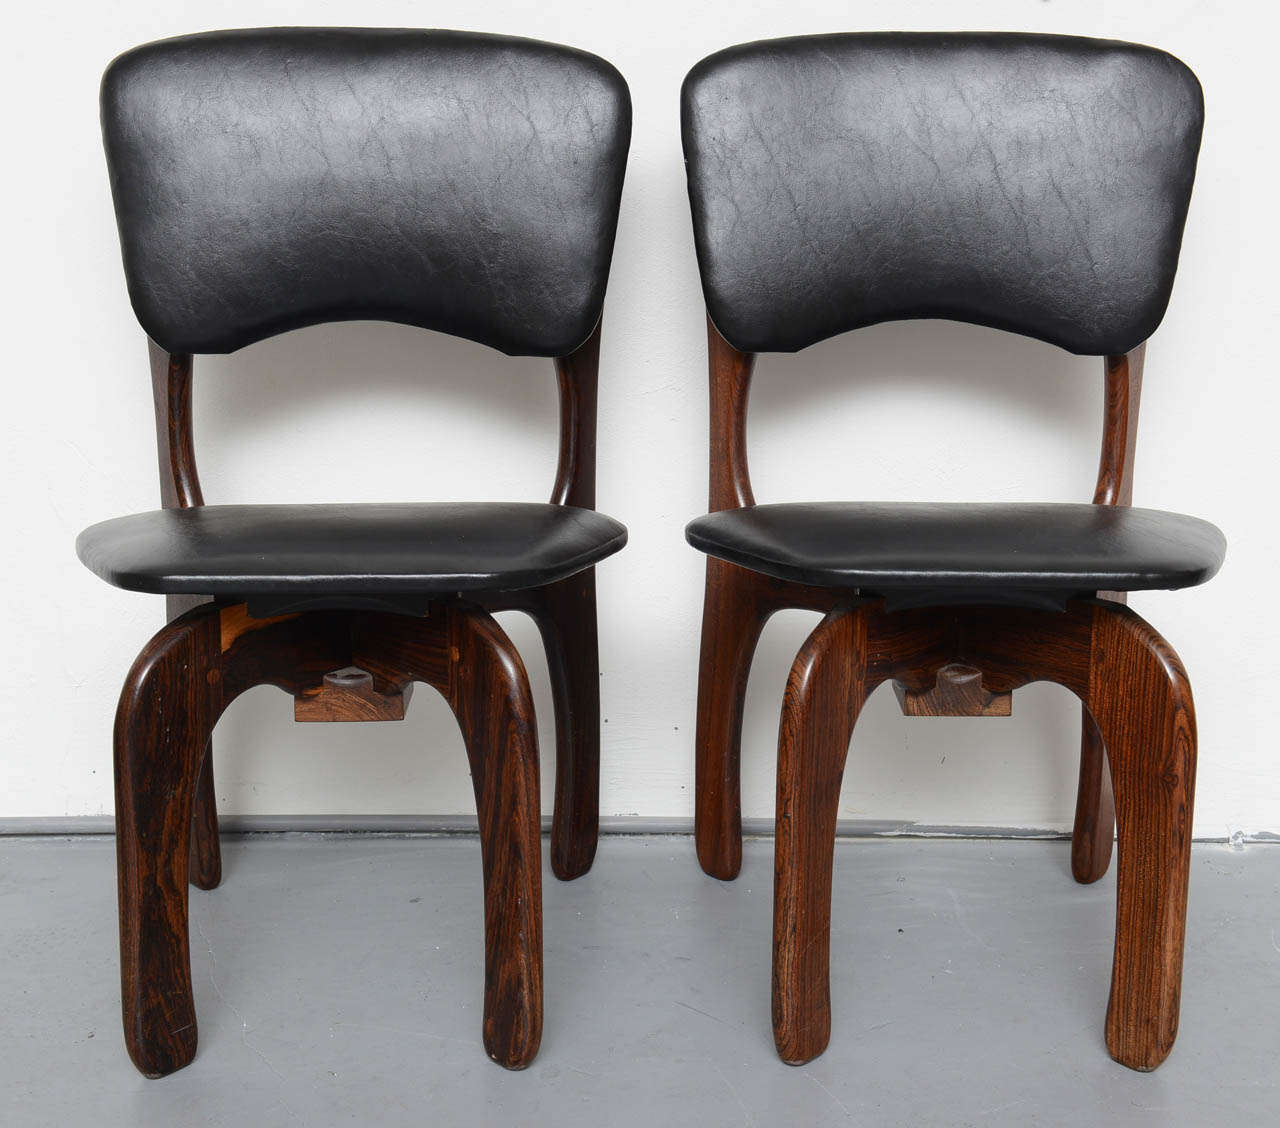 Beautiful set of original Don Shoemaker chairs from Mexican rosewood, 1971.